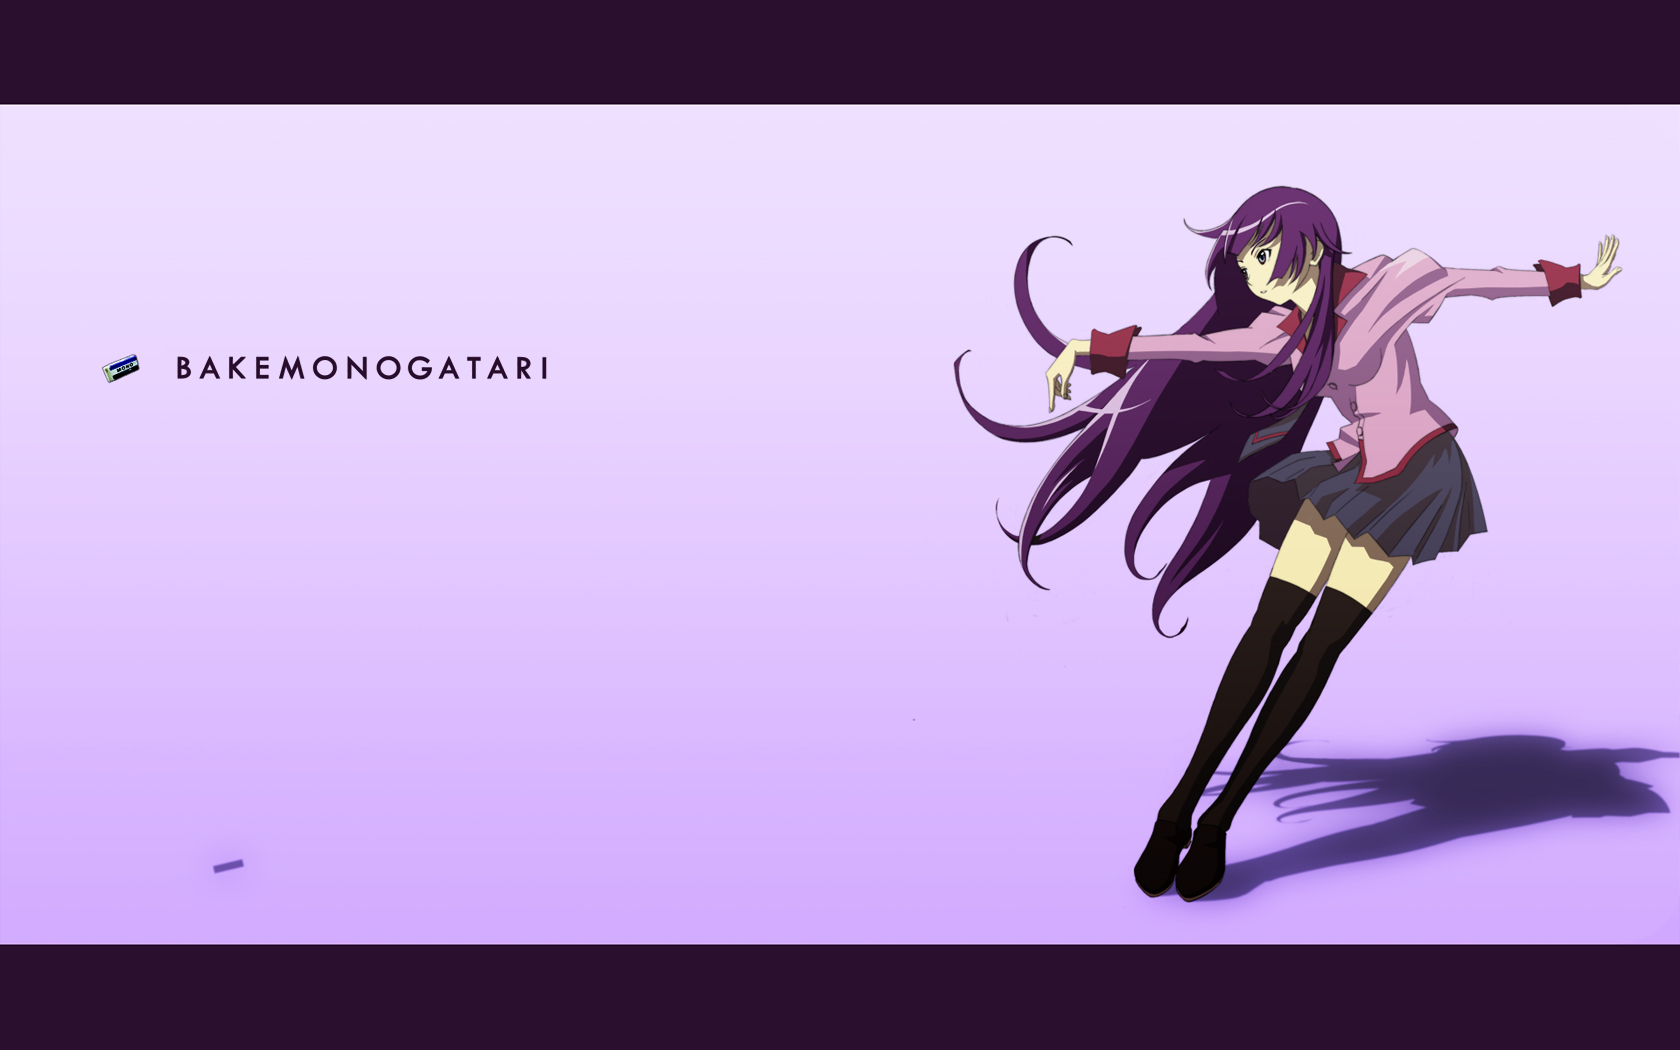 Bakemonogatari Wallpaper Pack 2 | Randomness Thing